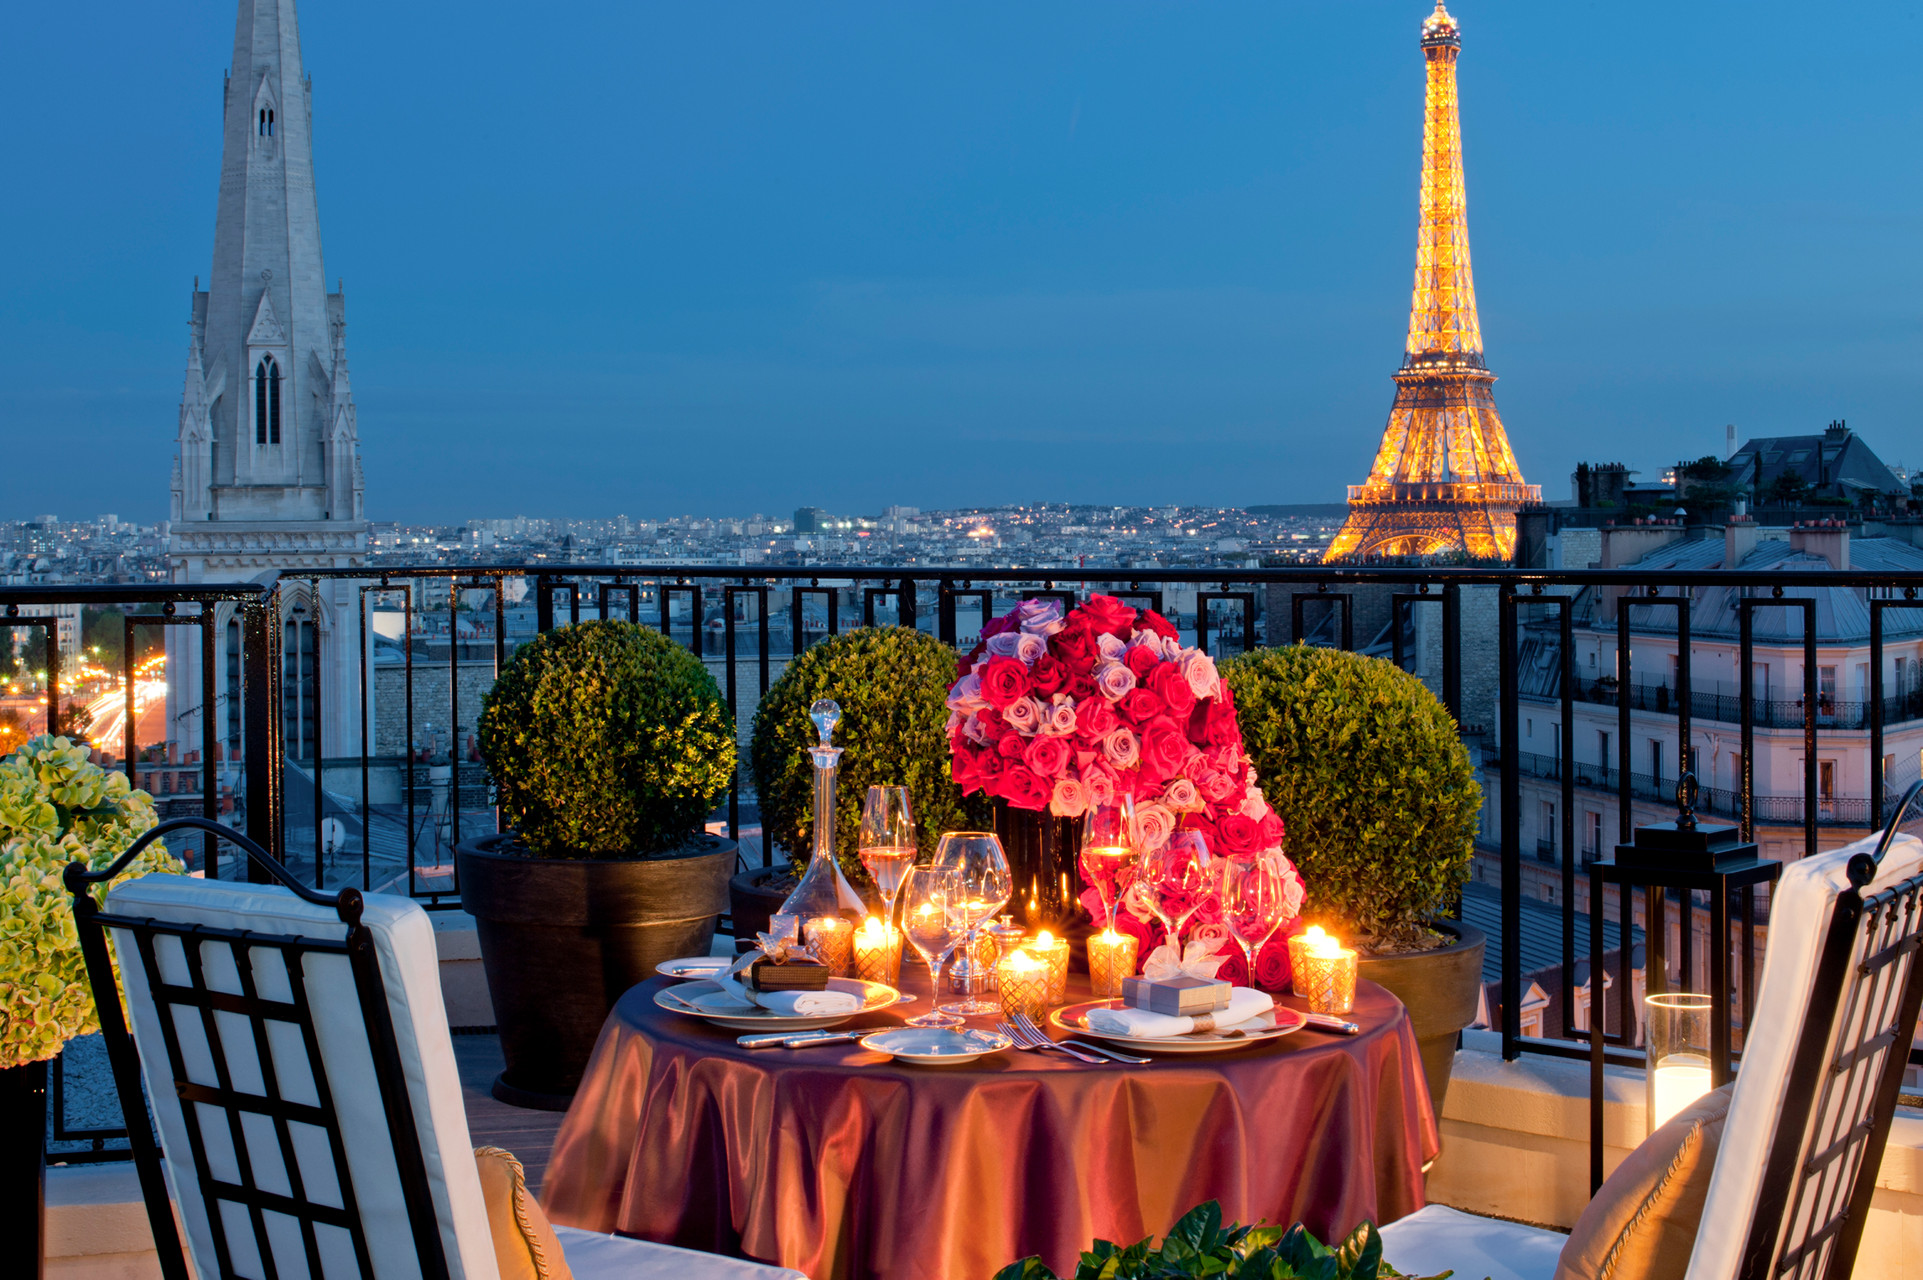 Luxury Travel: 5 Reasons Why Paris Should Be Your Next Destination restaurants for valentine's day The Most Romantic Restaurants for Valentine's Day luxury travel reasons why paris next destination valentines day restaurants for valentine's day The Most Romantic Restaurants for Valentine's Day luxury travel reasons why paris next destination valentines day